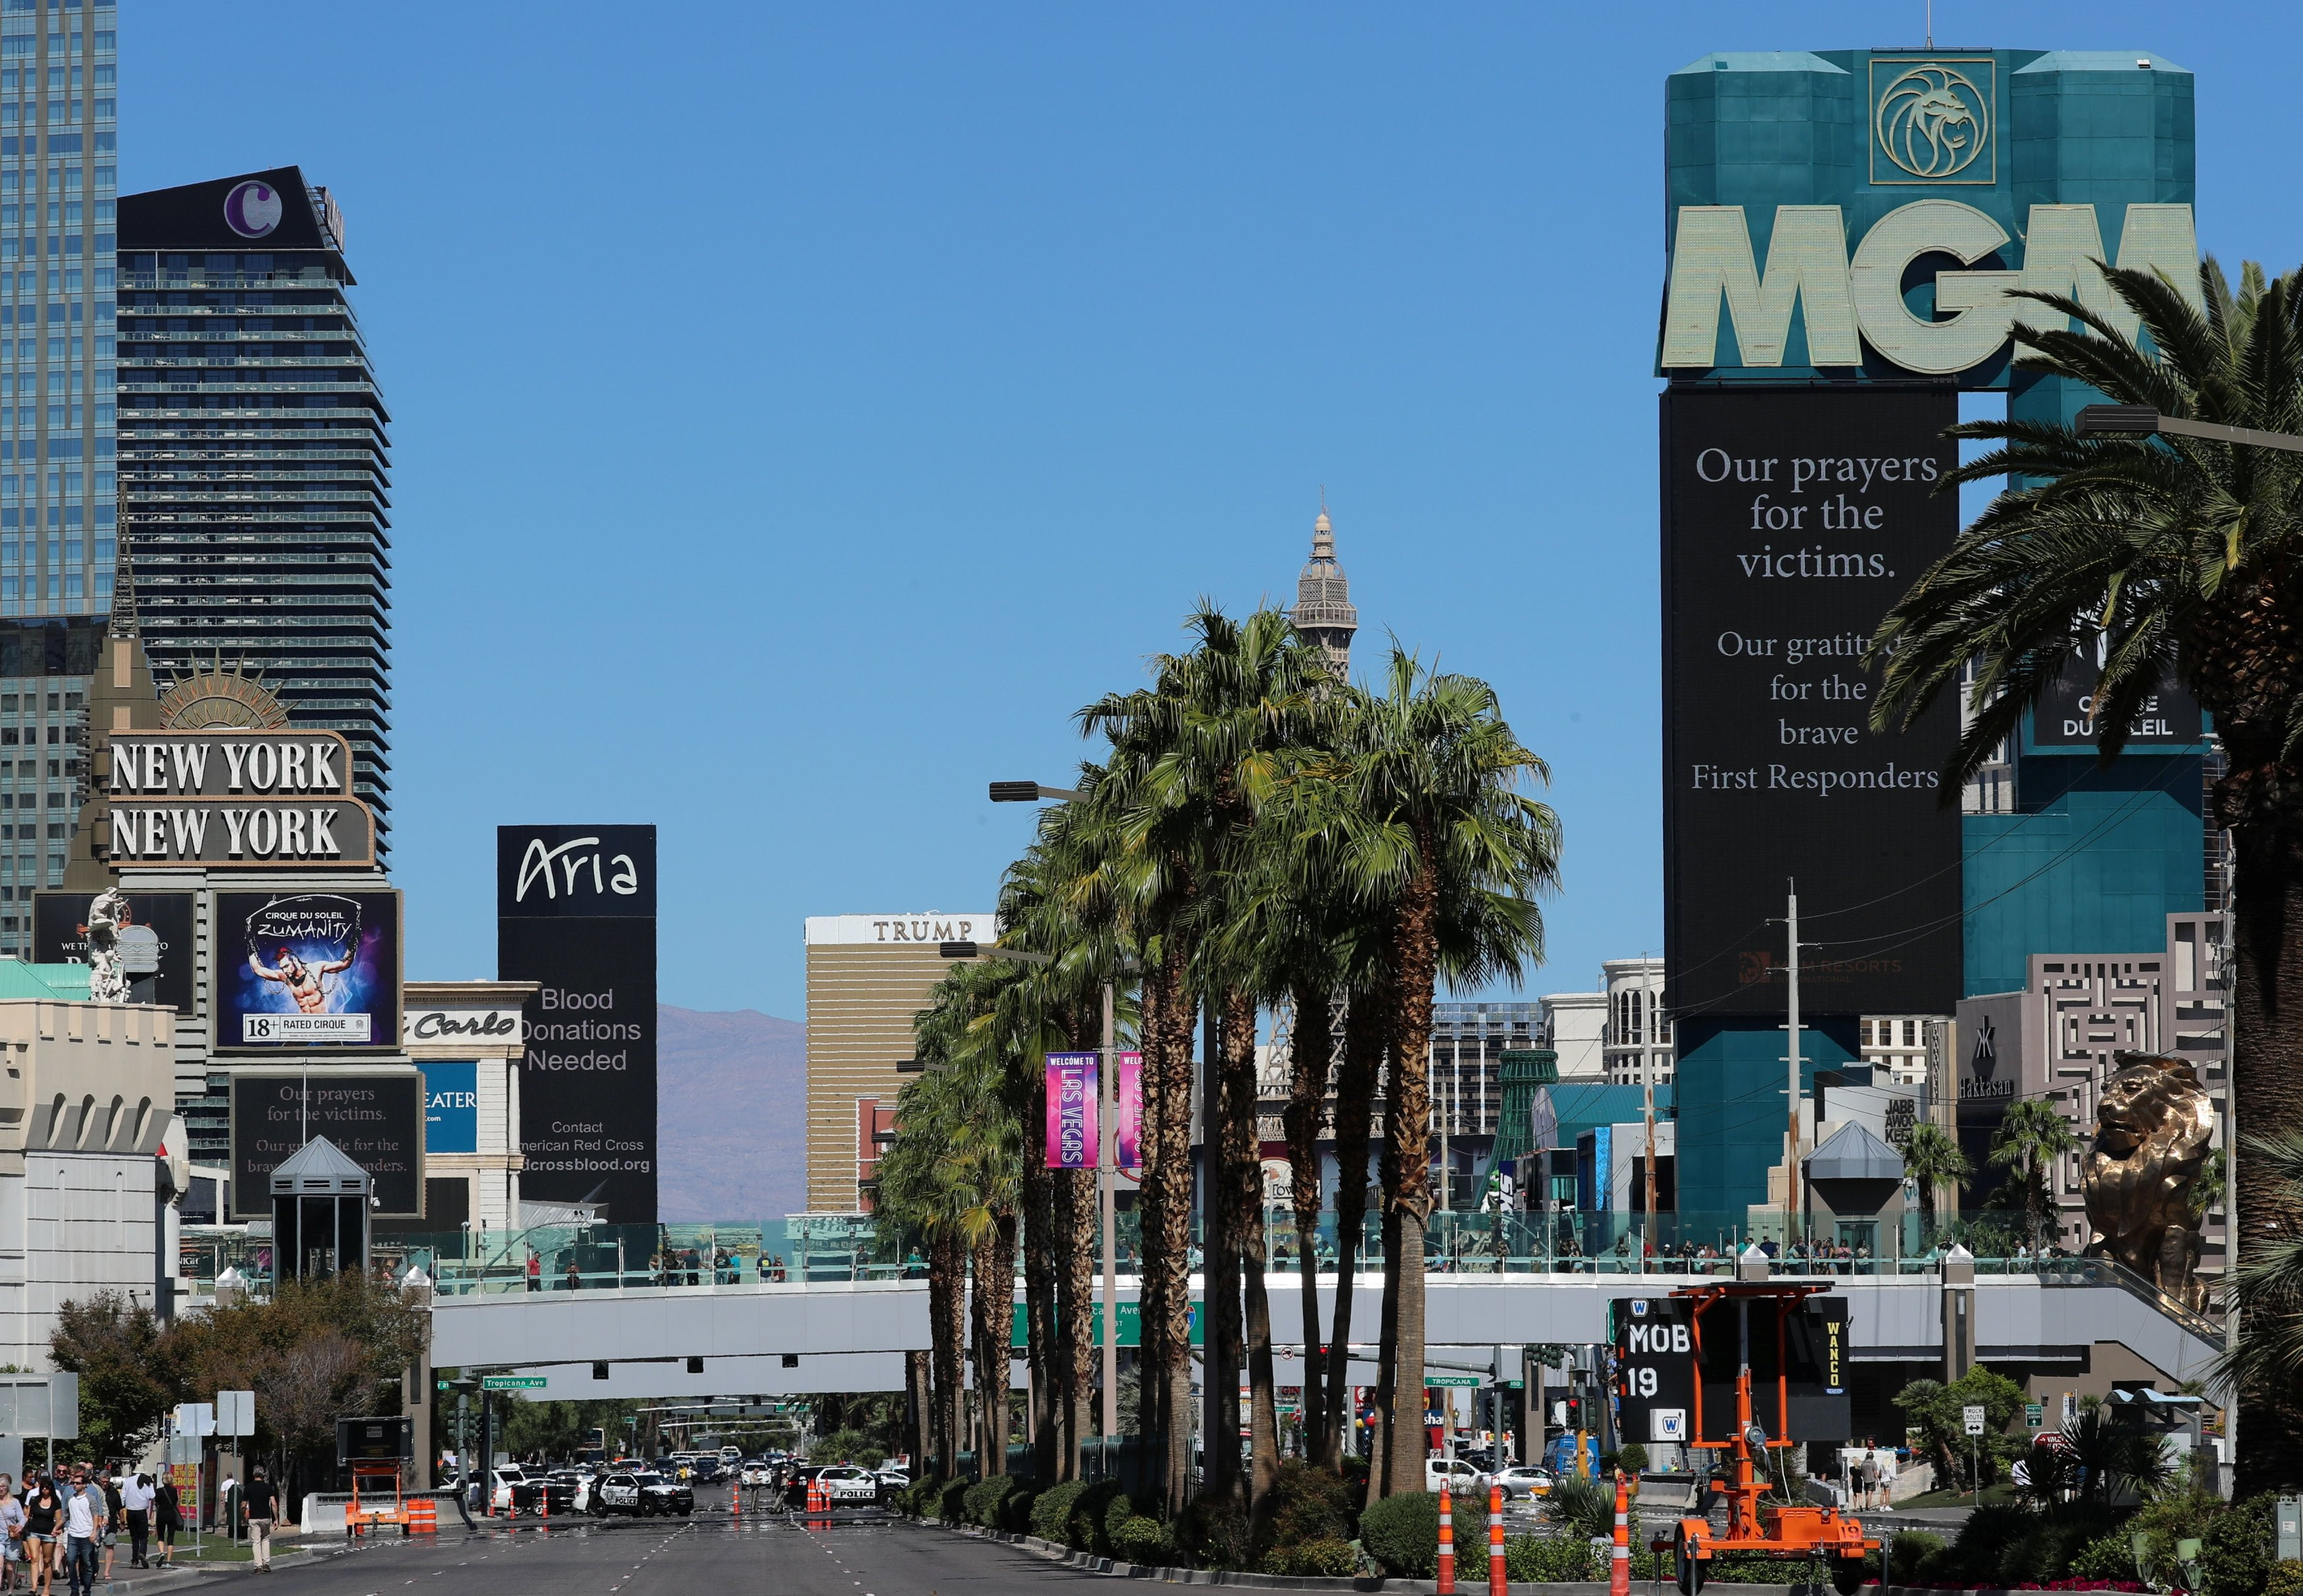 A request for blood donations and a condolences sign appears on various hotels in Las Vegas